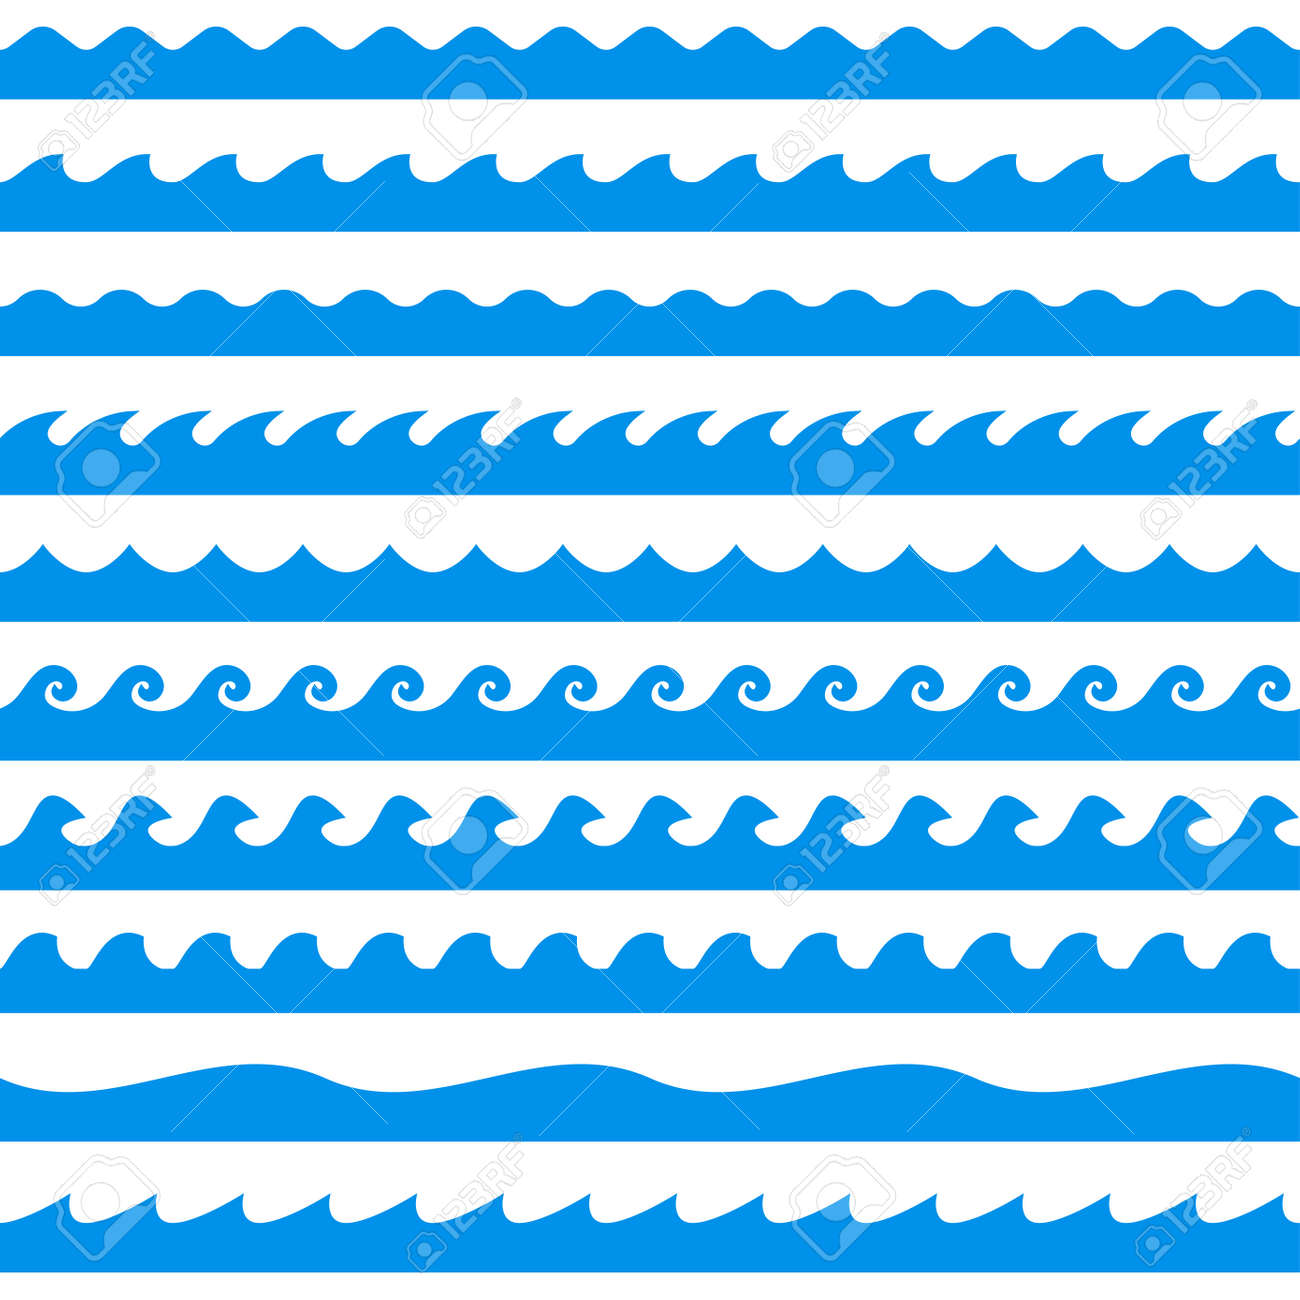 Water wave set. Line waves seamless pattern collection. Sea and Ocean graphic design. Vector illustration. - 157078132